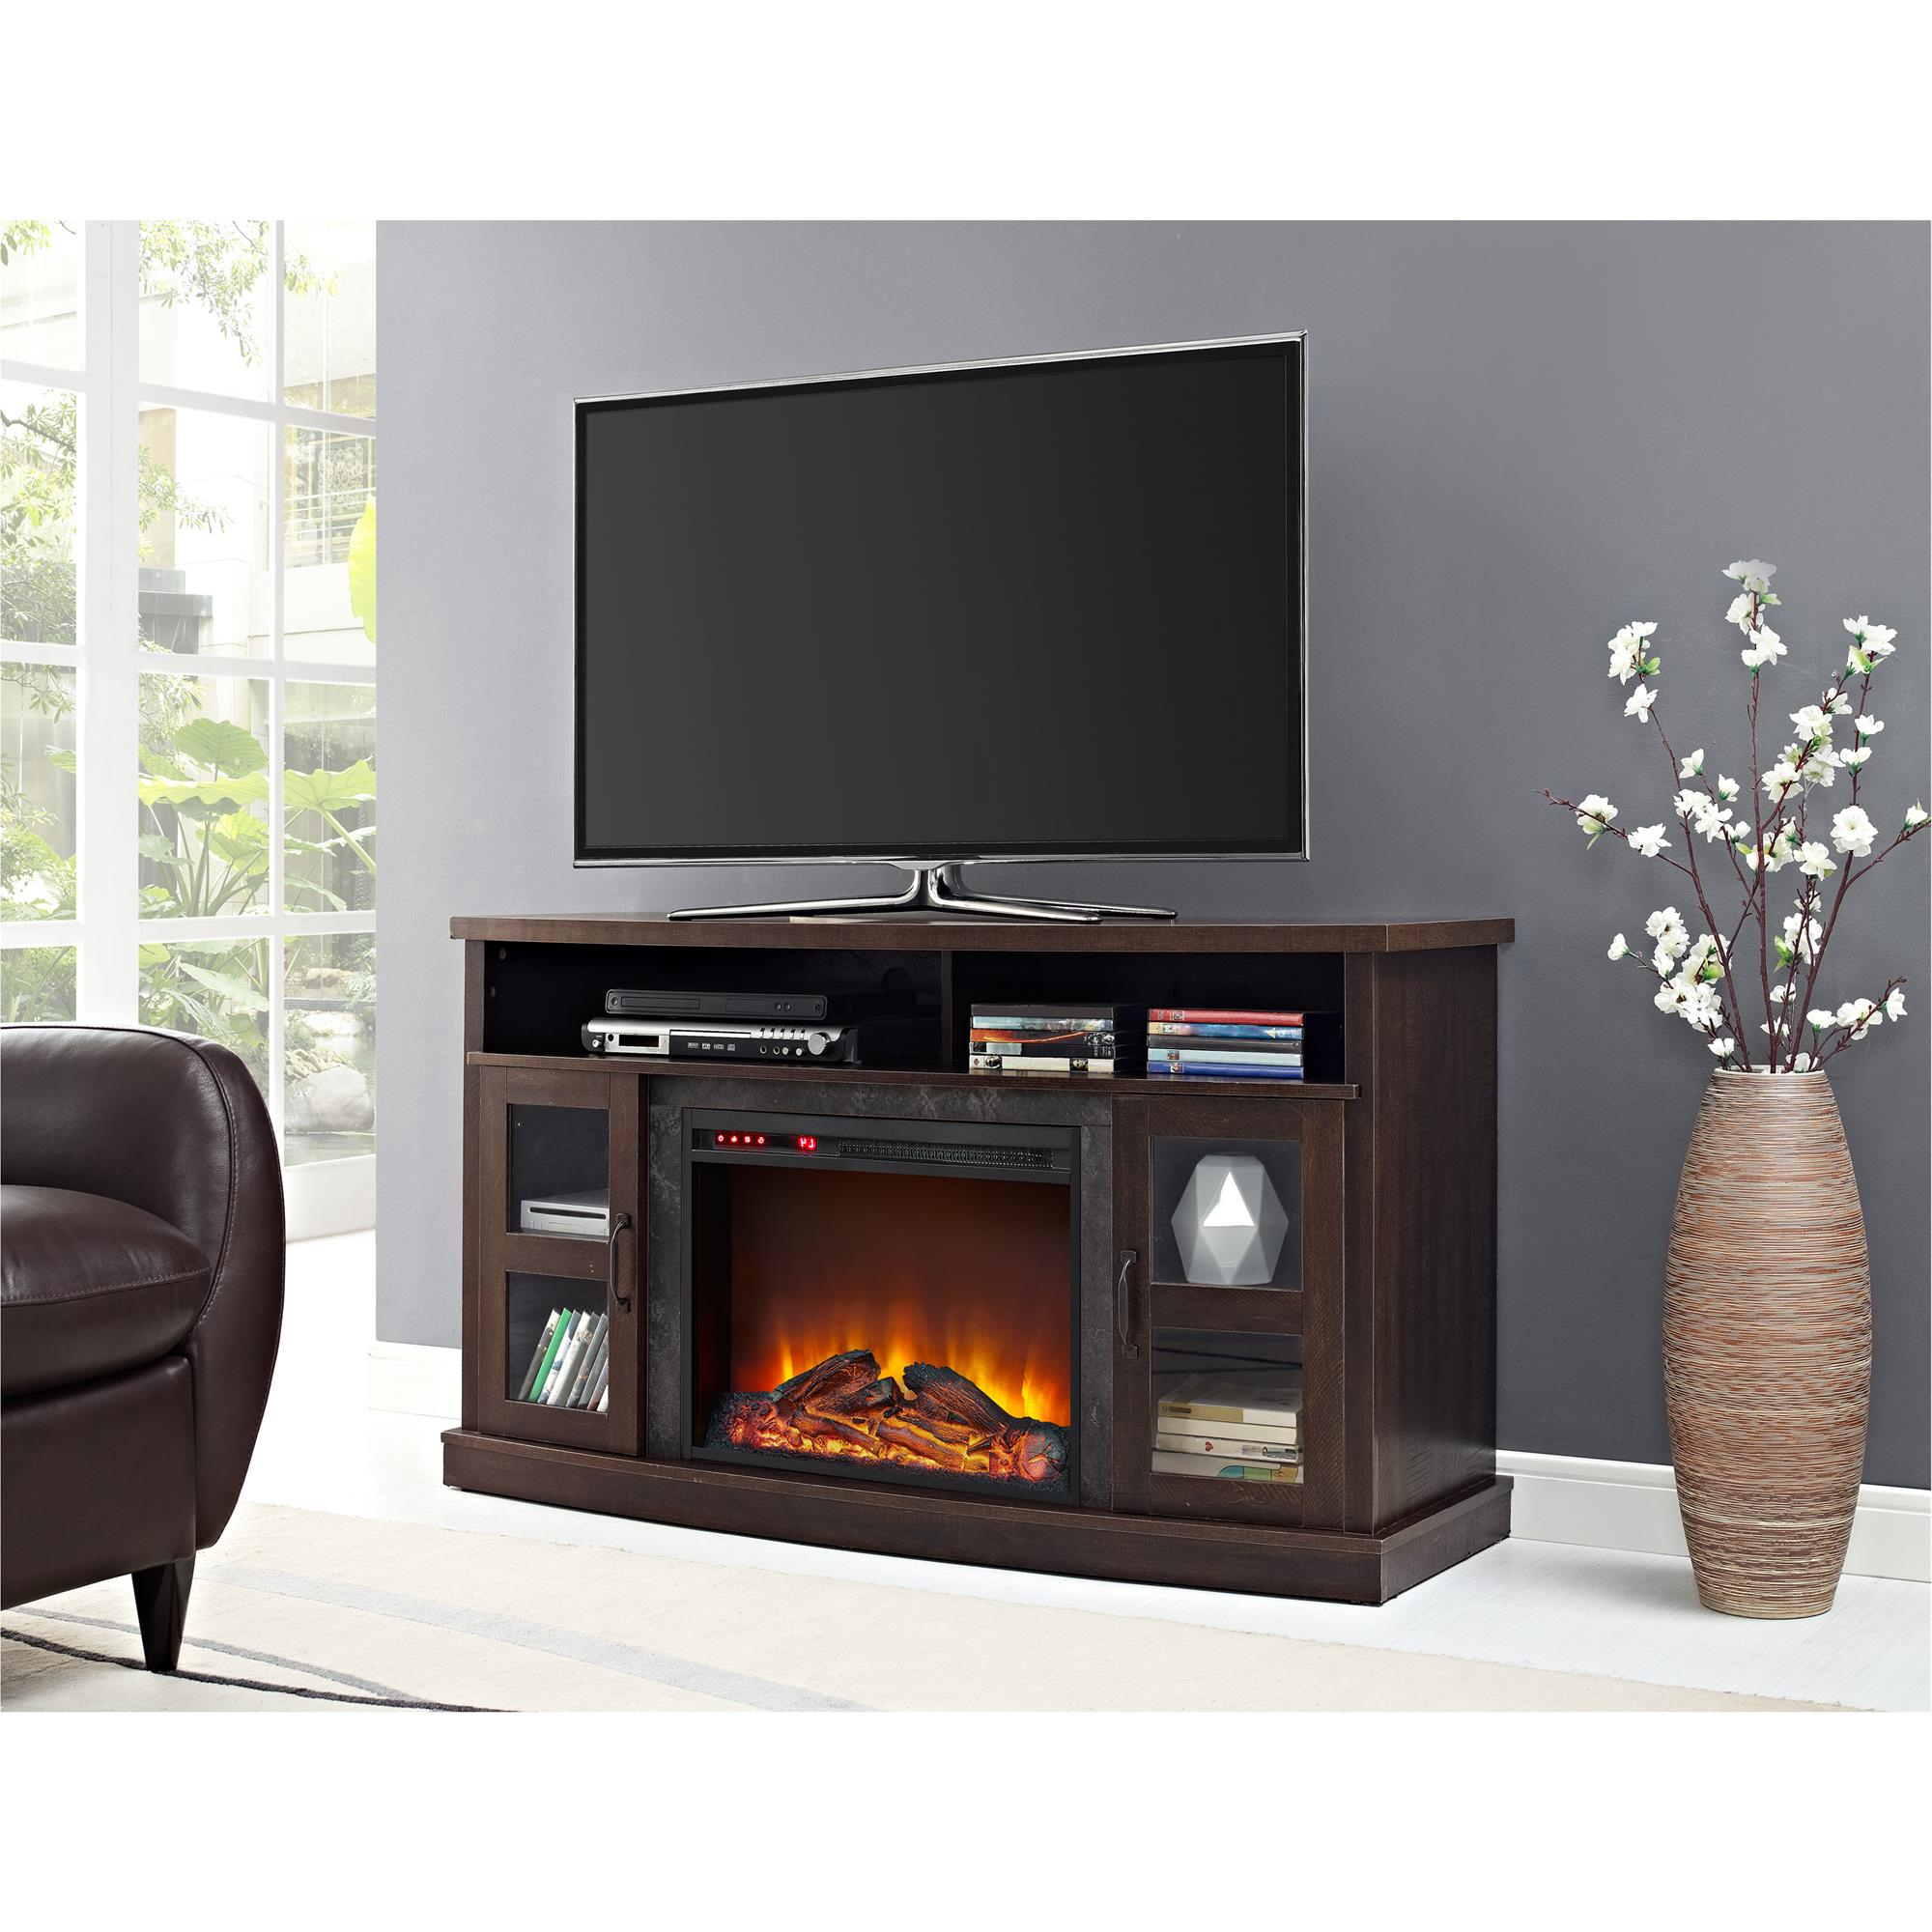 """Ameriwood Home Barrow Creek Fireplace Console With Glass Intended For Margulies Tv Stands For Tvs Up To 60"""" (View 2 of 20)"""